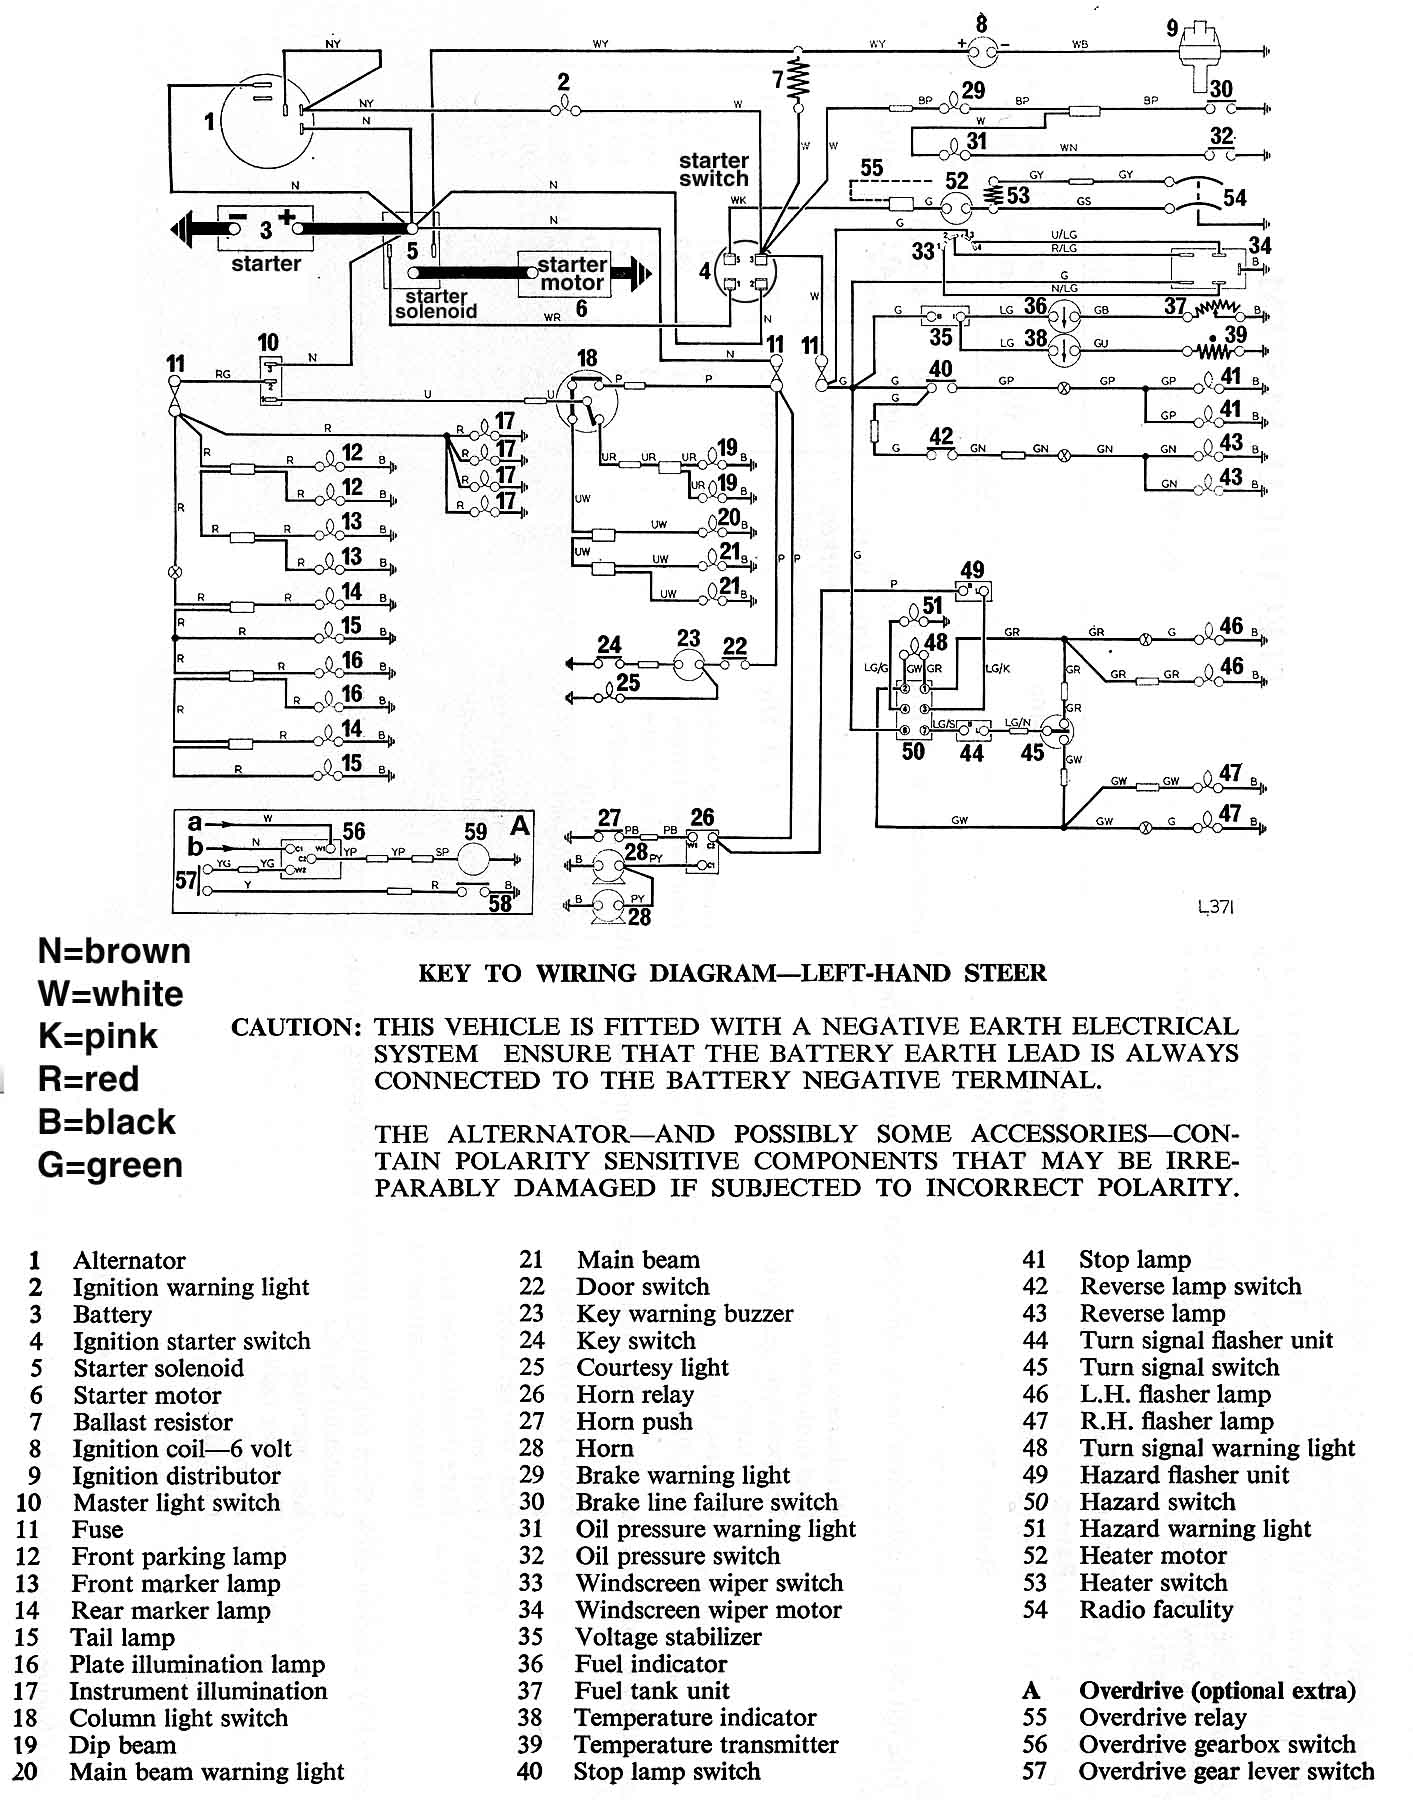 Wiring Schematics And Diagrams Triumph Spitfire Gt6 Herald Light Switch Schematic For Mkiv Diagram